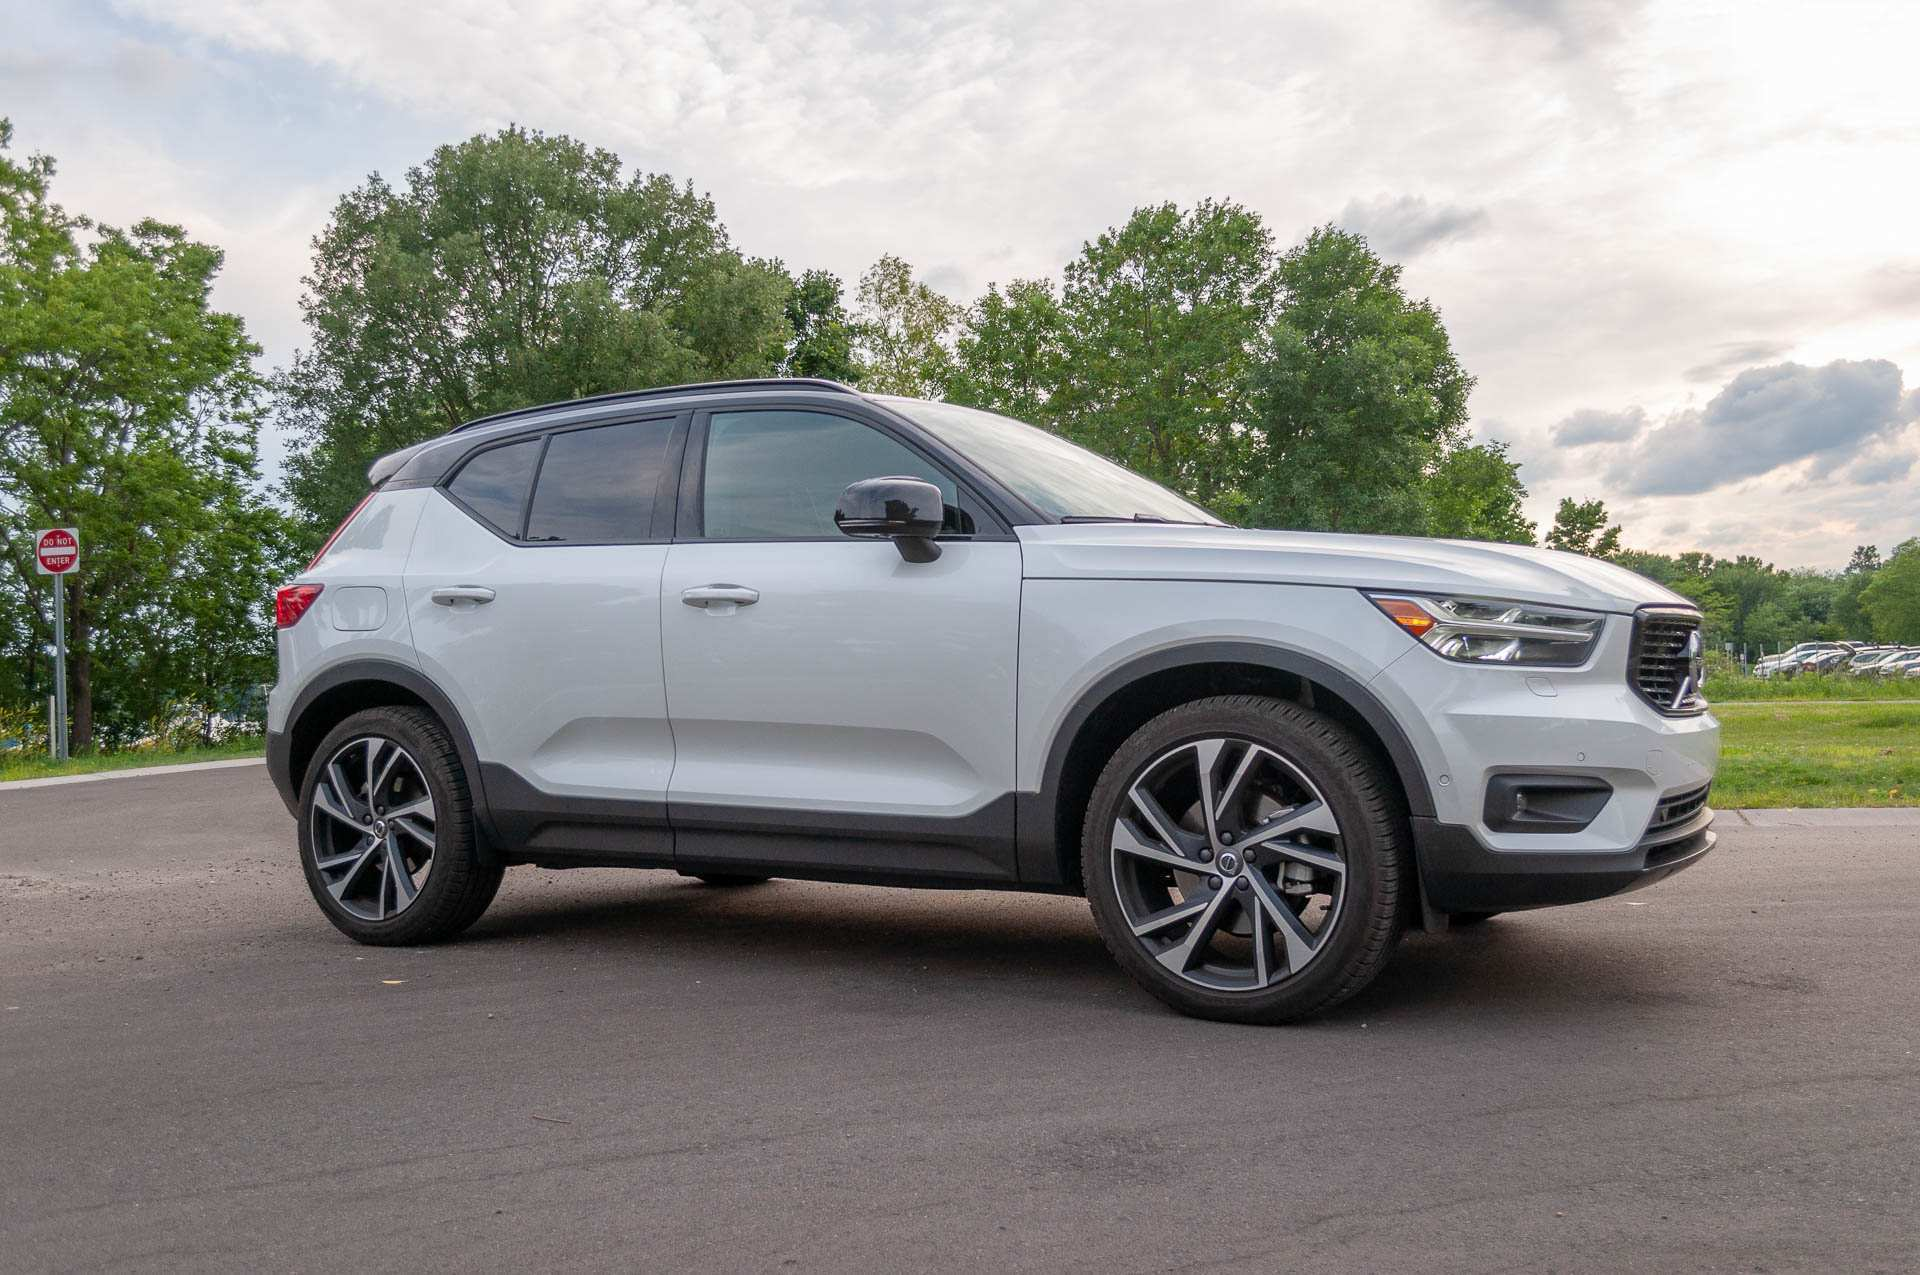 85 Concept of 2019 Volvo Xc40 T5 R Design Release Date by 2019 Volvo Xc40 T5 R Design